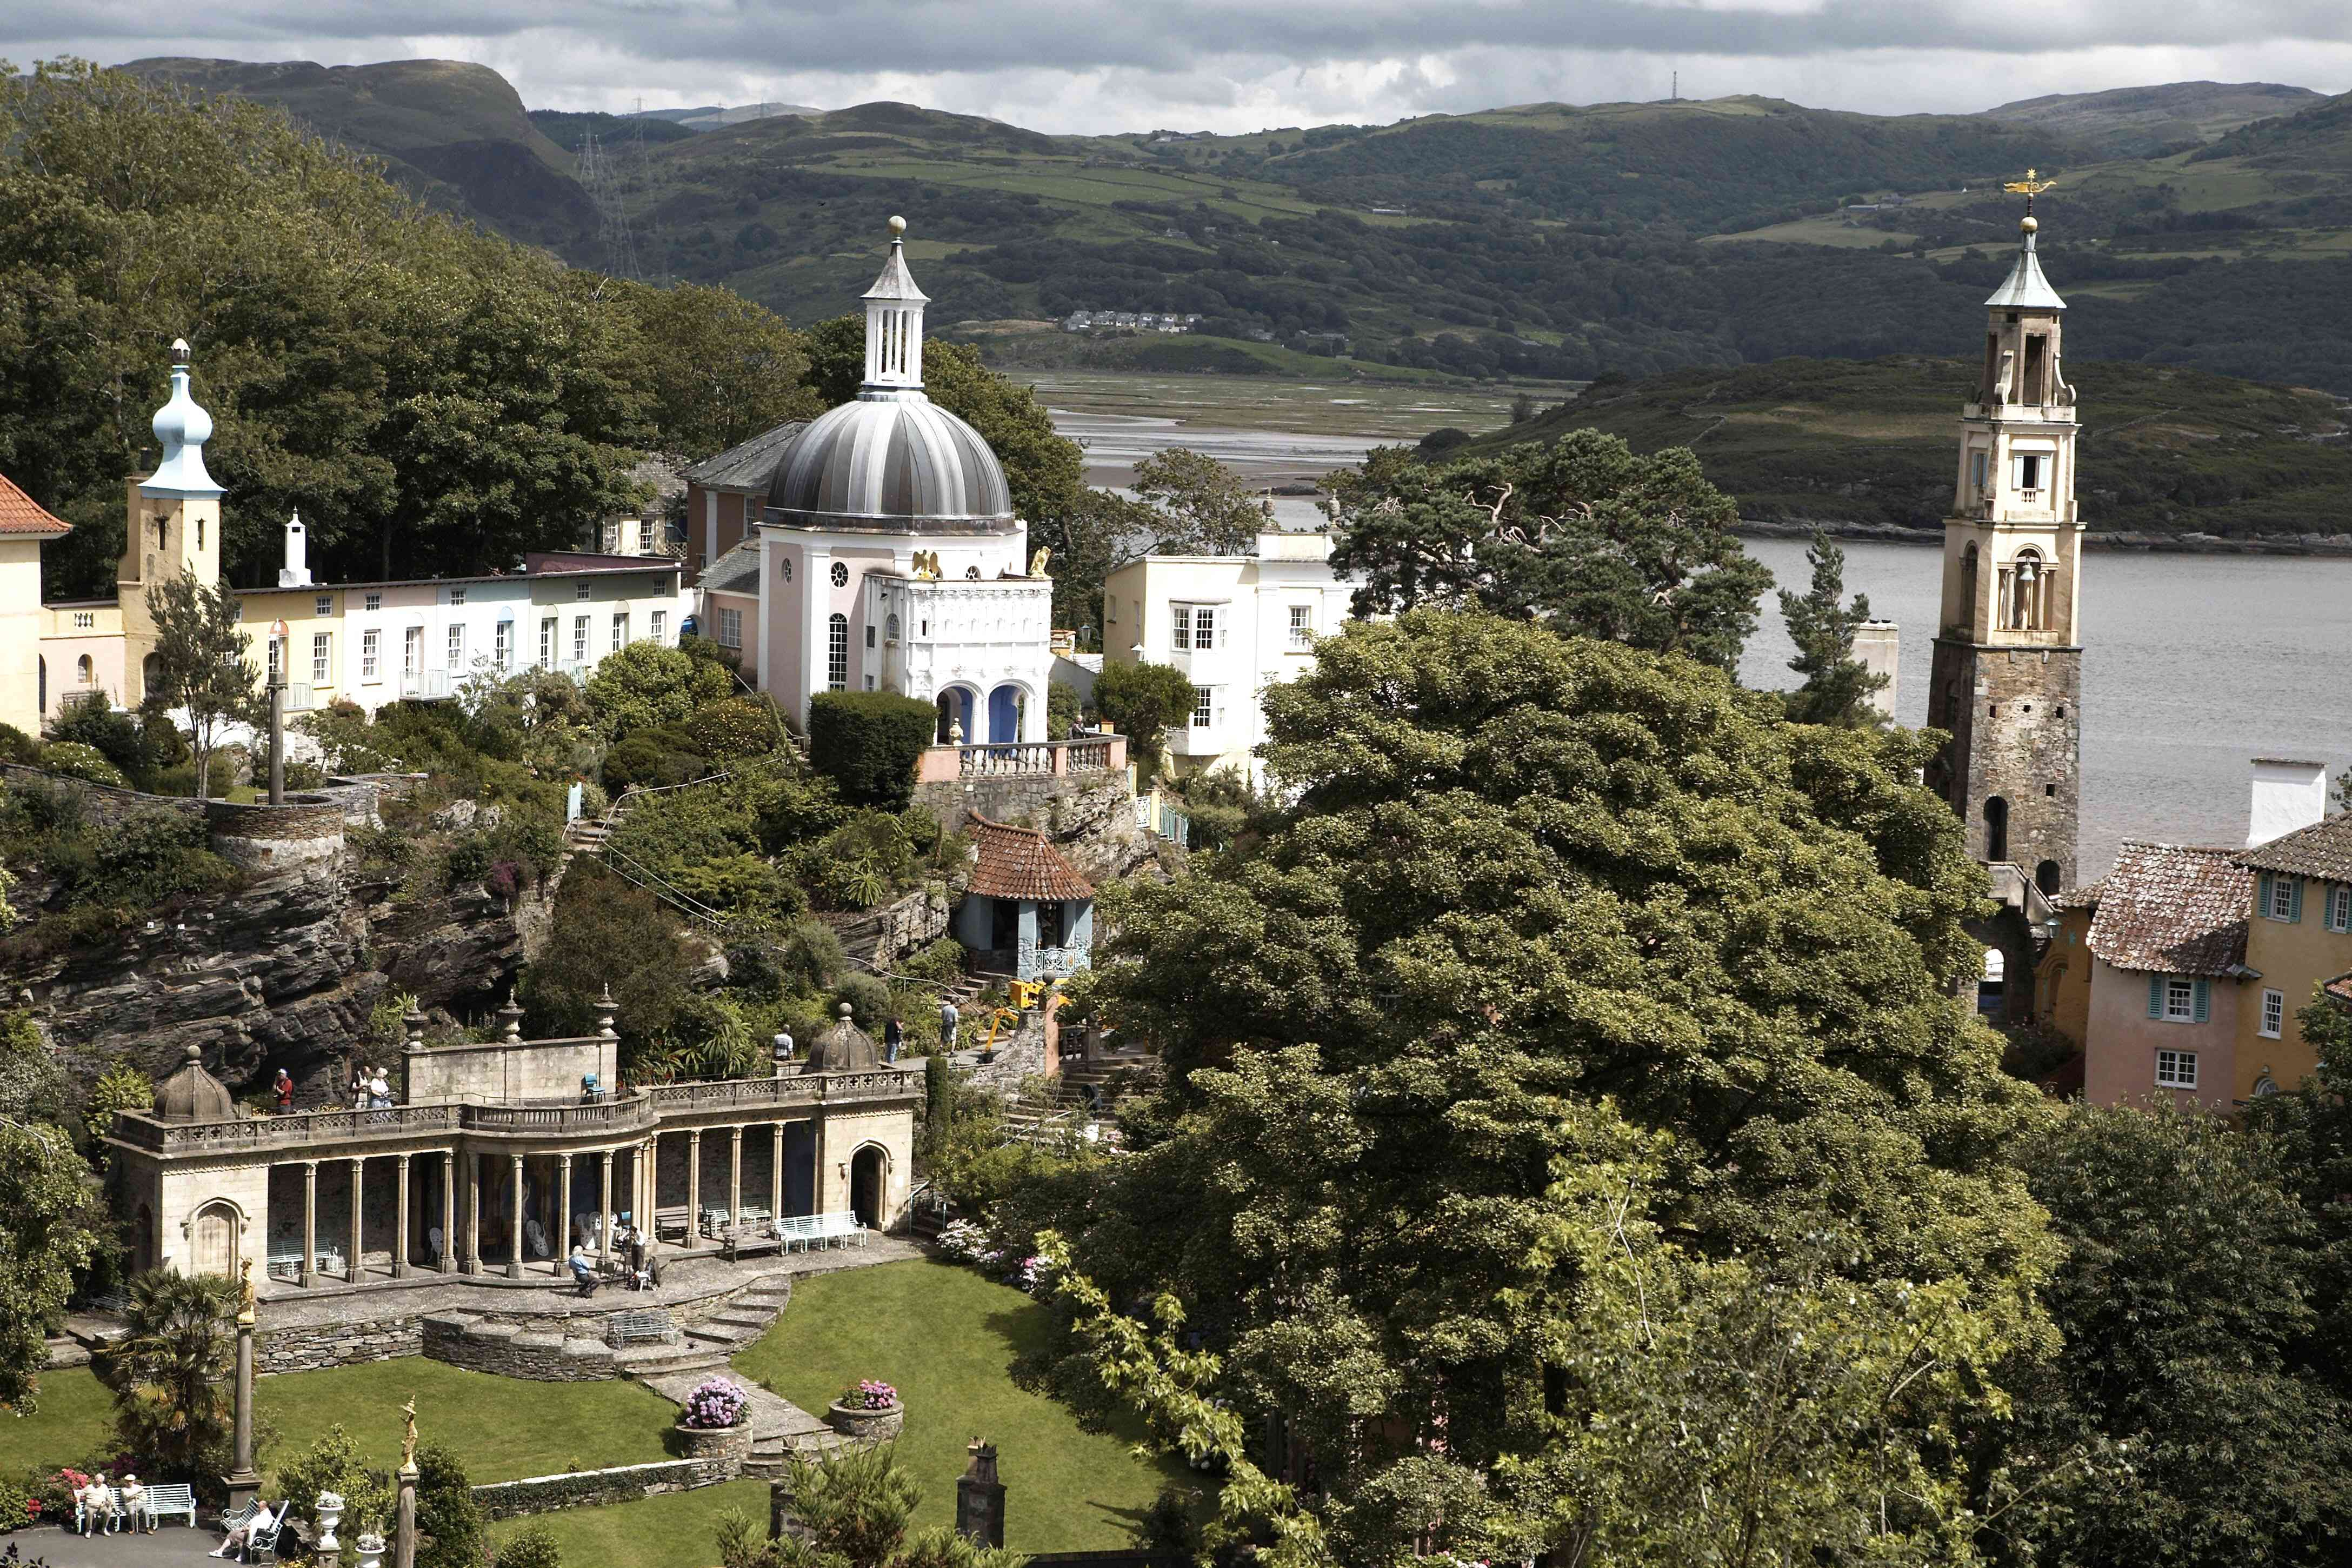 The domes and spires of Portmeirion in North Wales